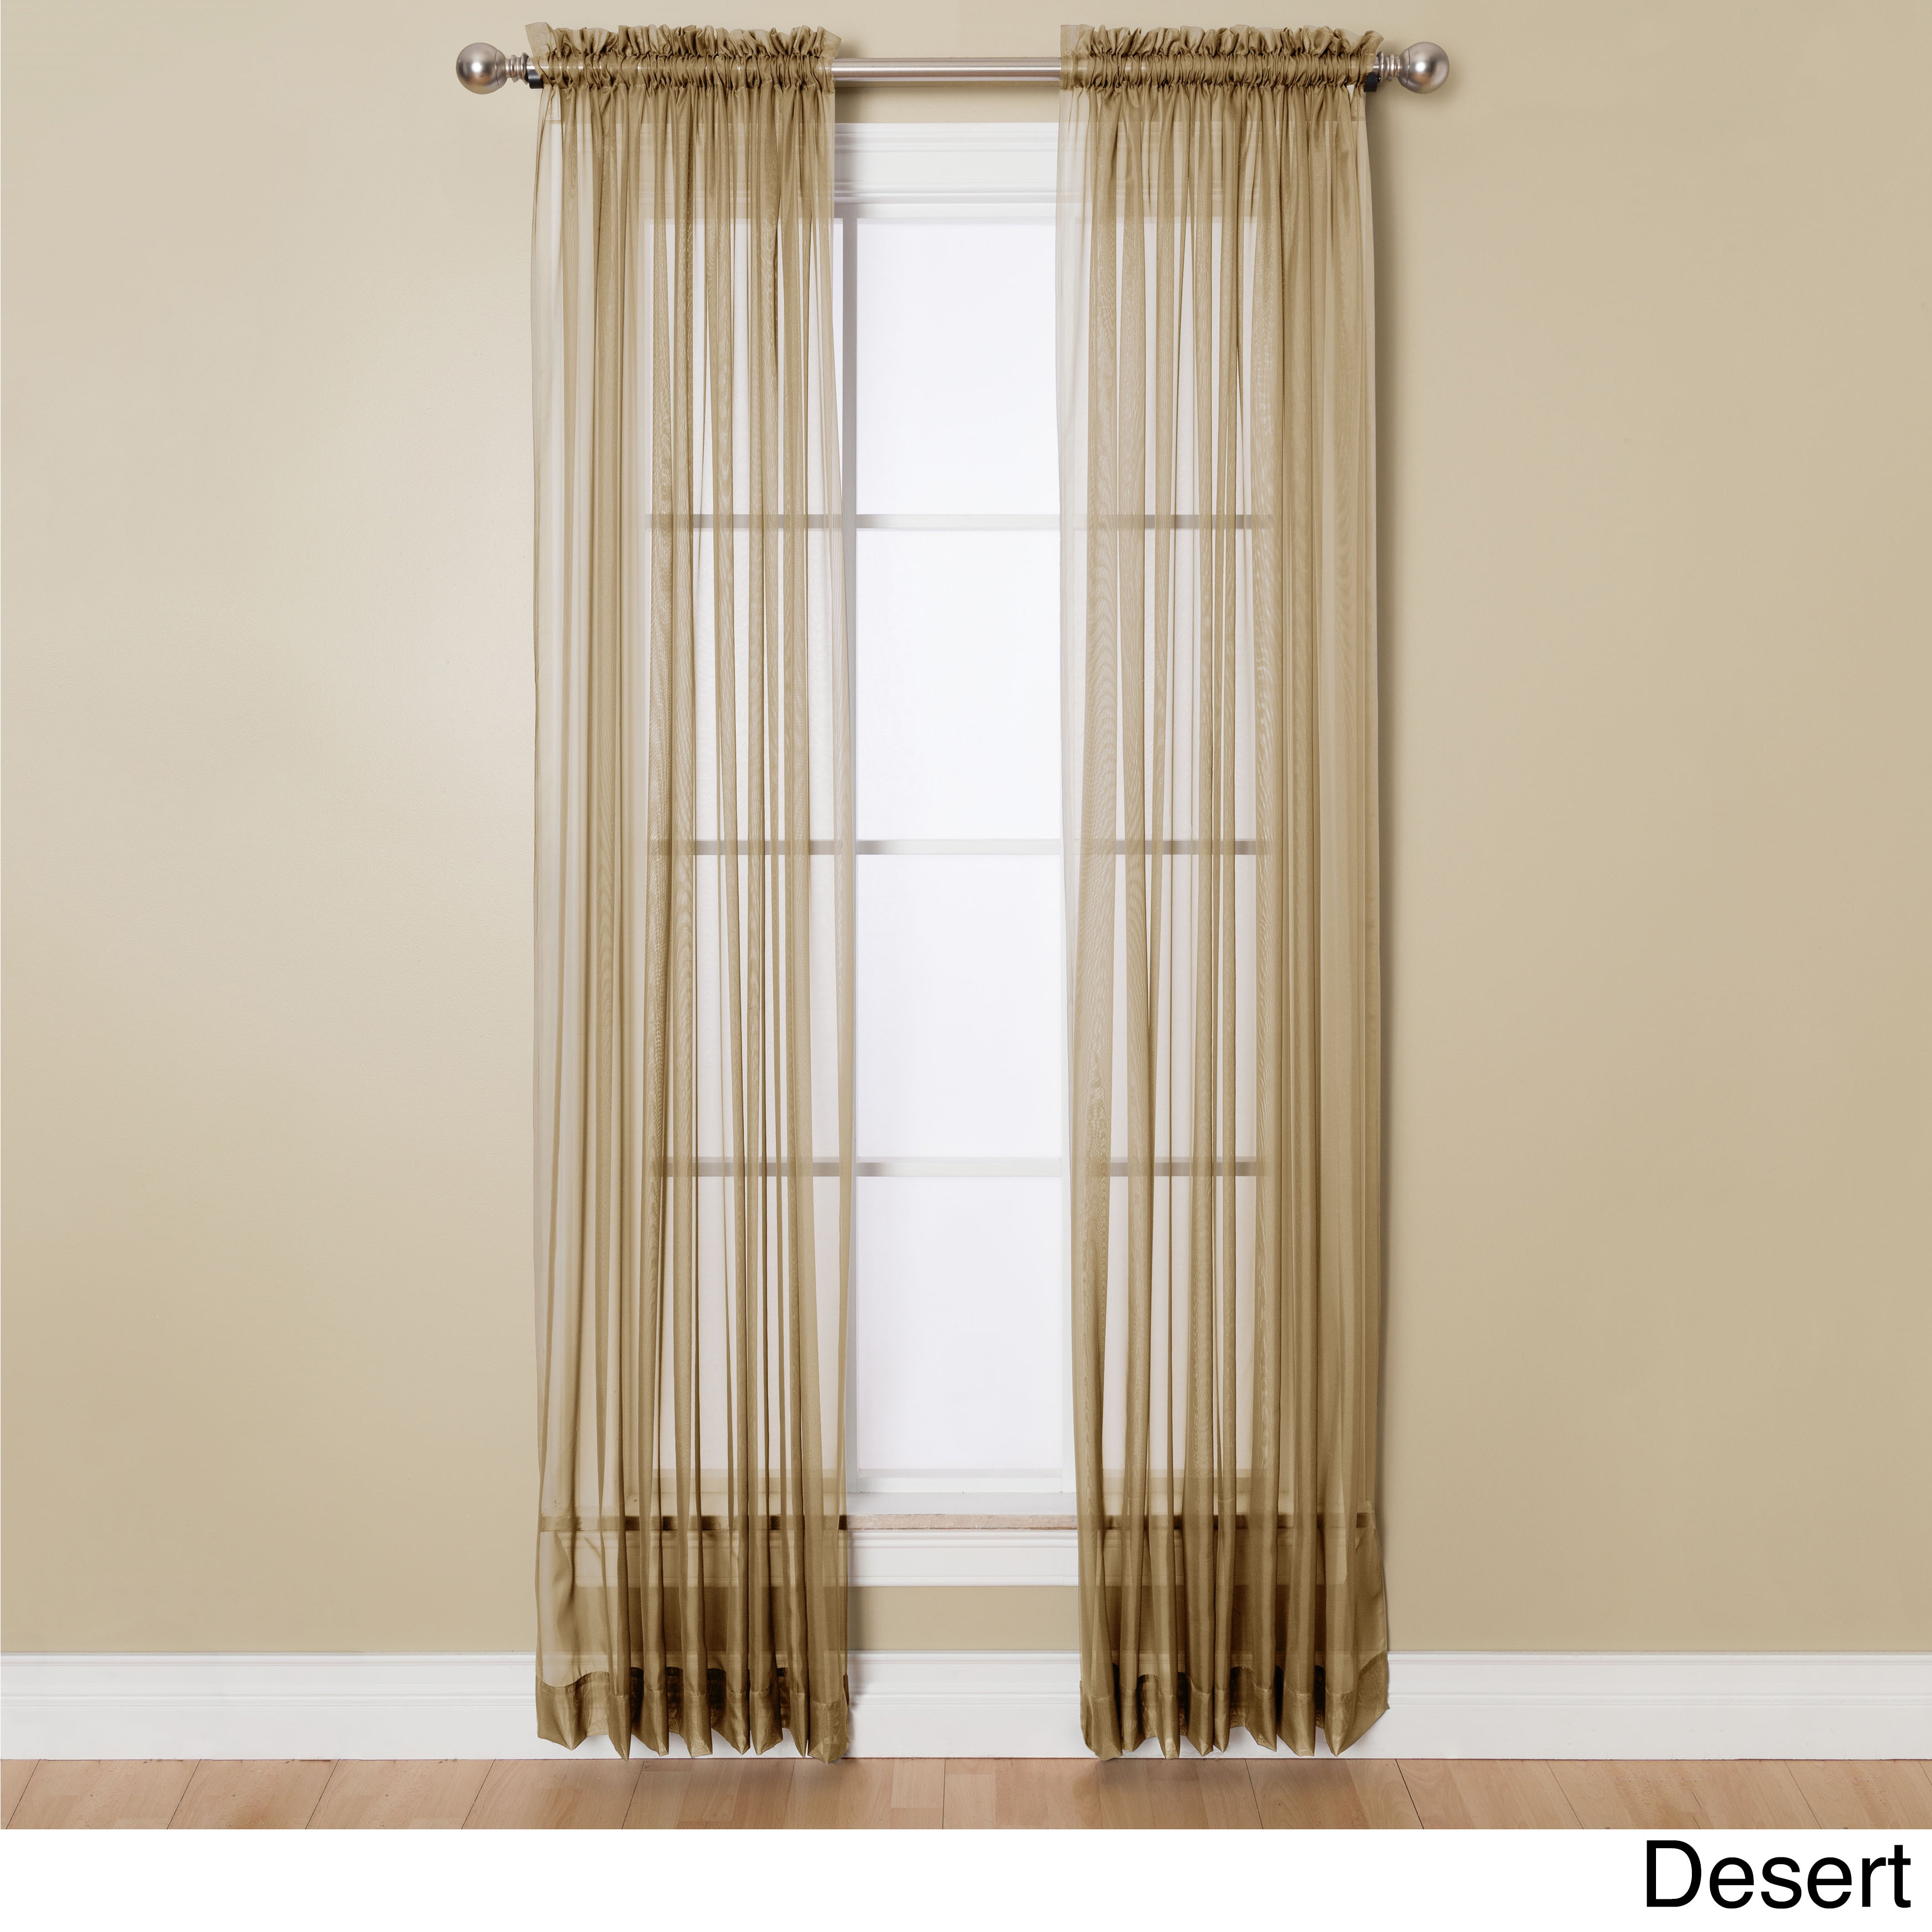 tension rods extra curtain shower inch to adjustable measurements curtains x rod for curved inside long